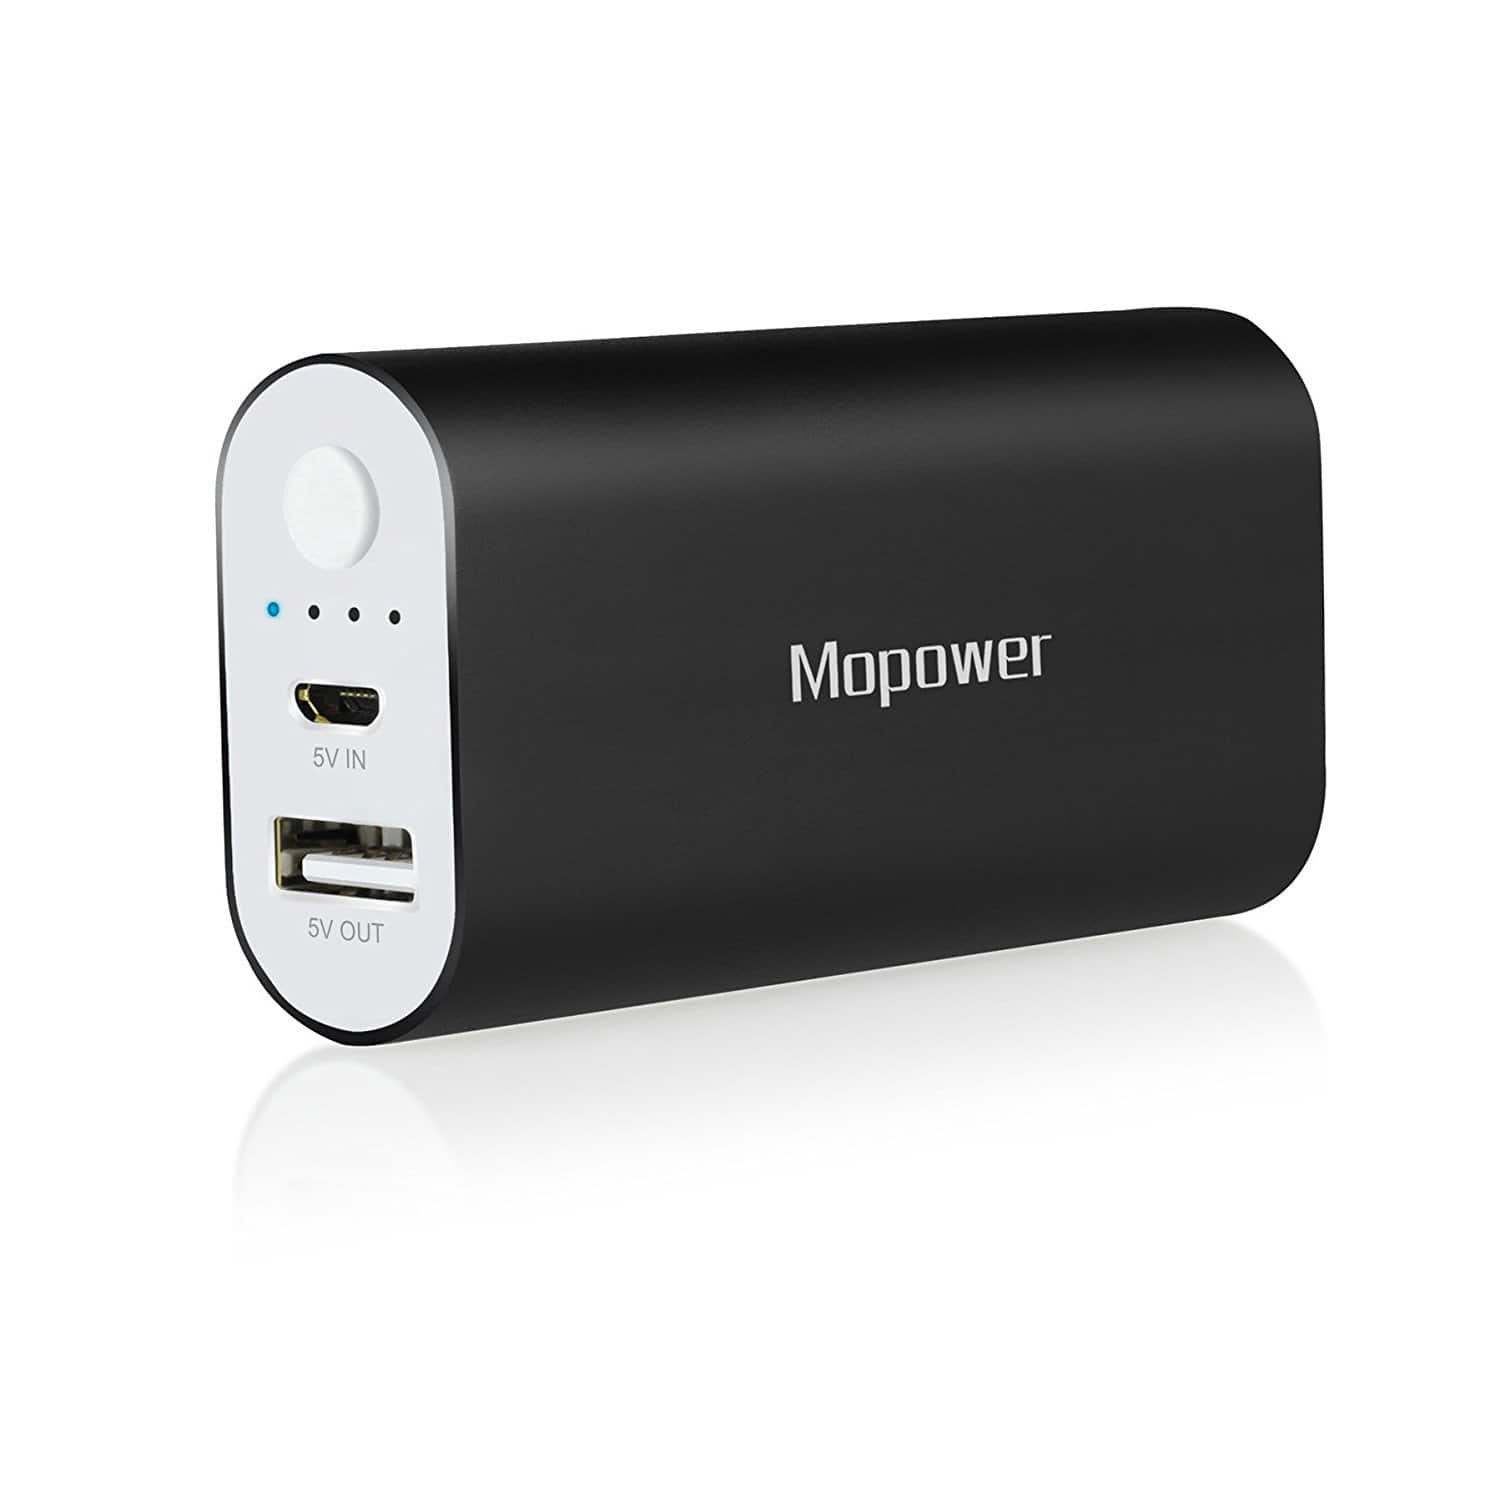 6000mAh Mopower Portable USB Power Bank $4.50